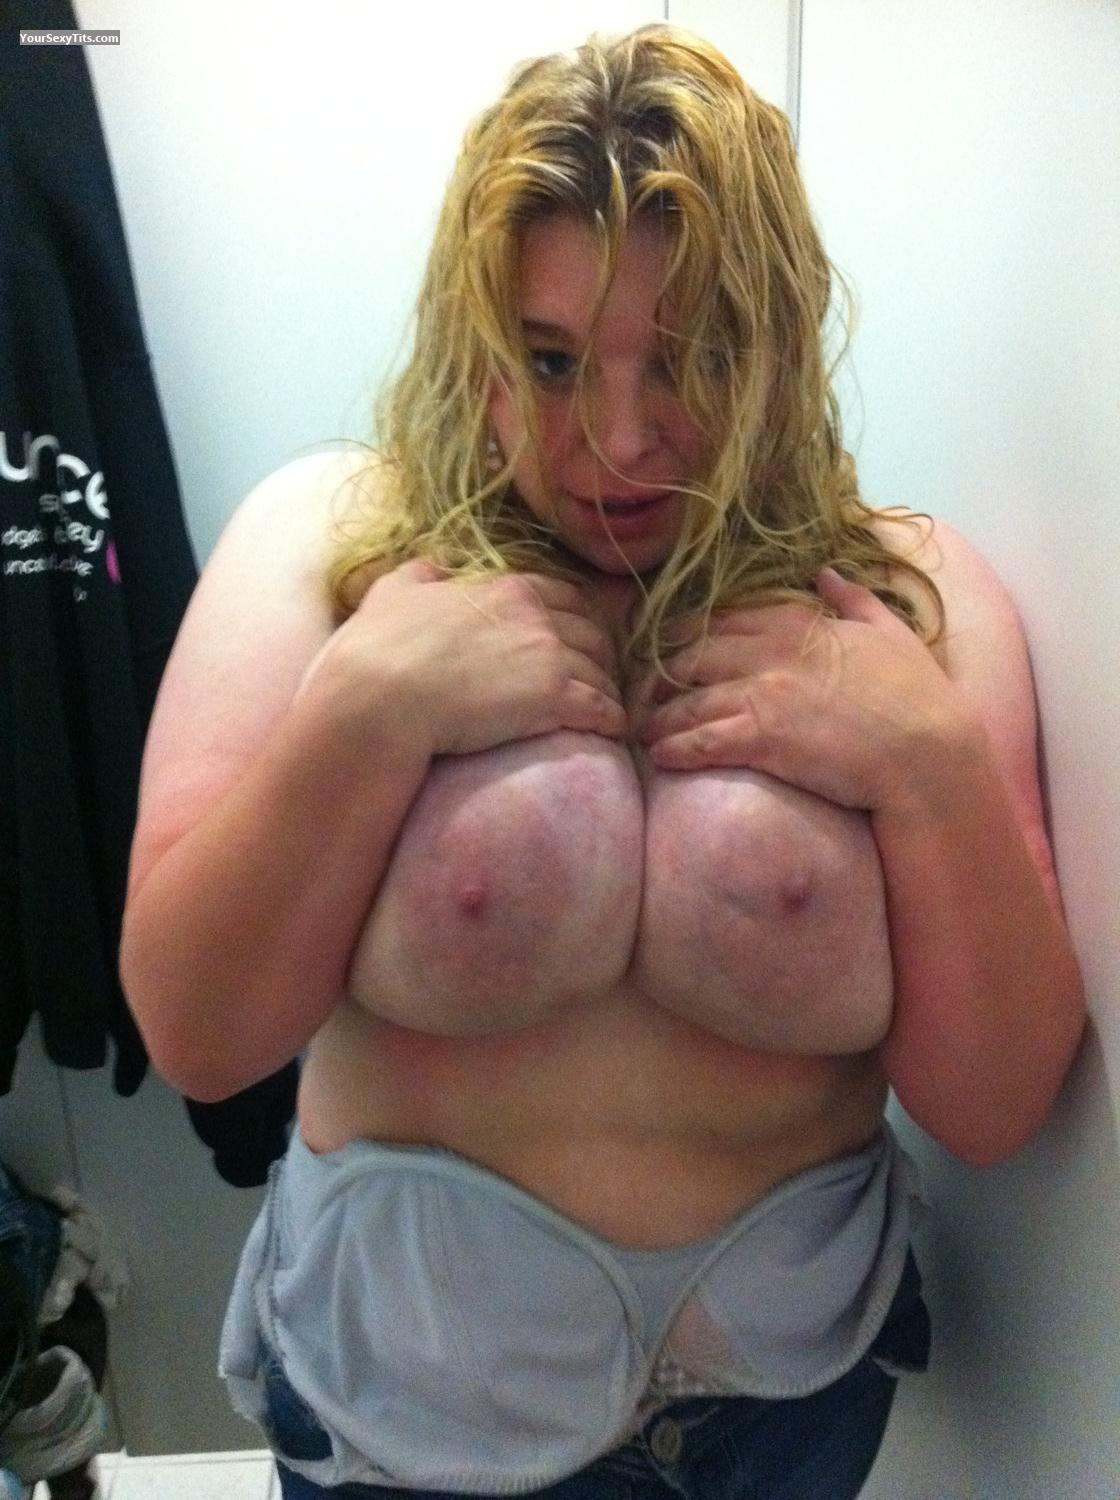 Tit Flash: Very Big Tits By IPhone - Topless Lucy from Australia